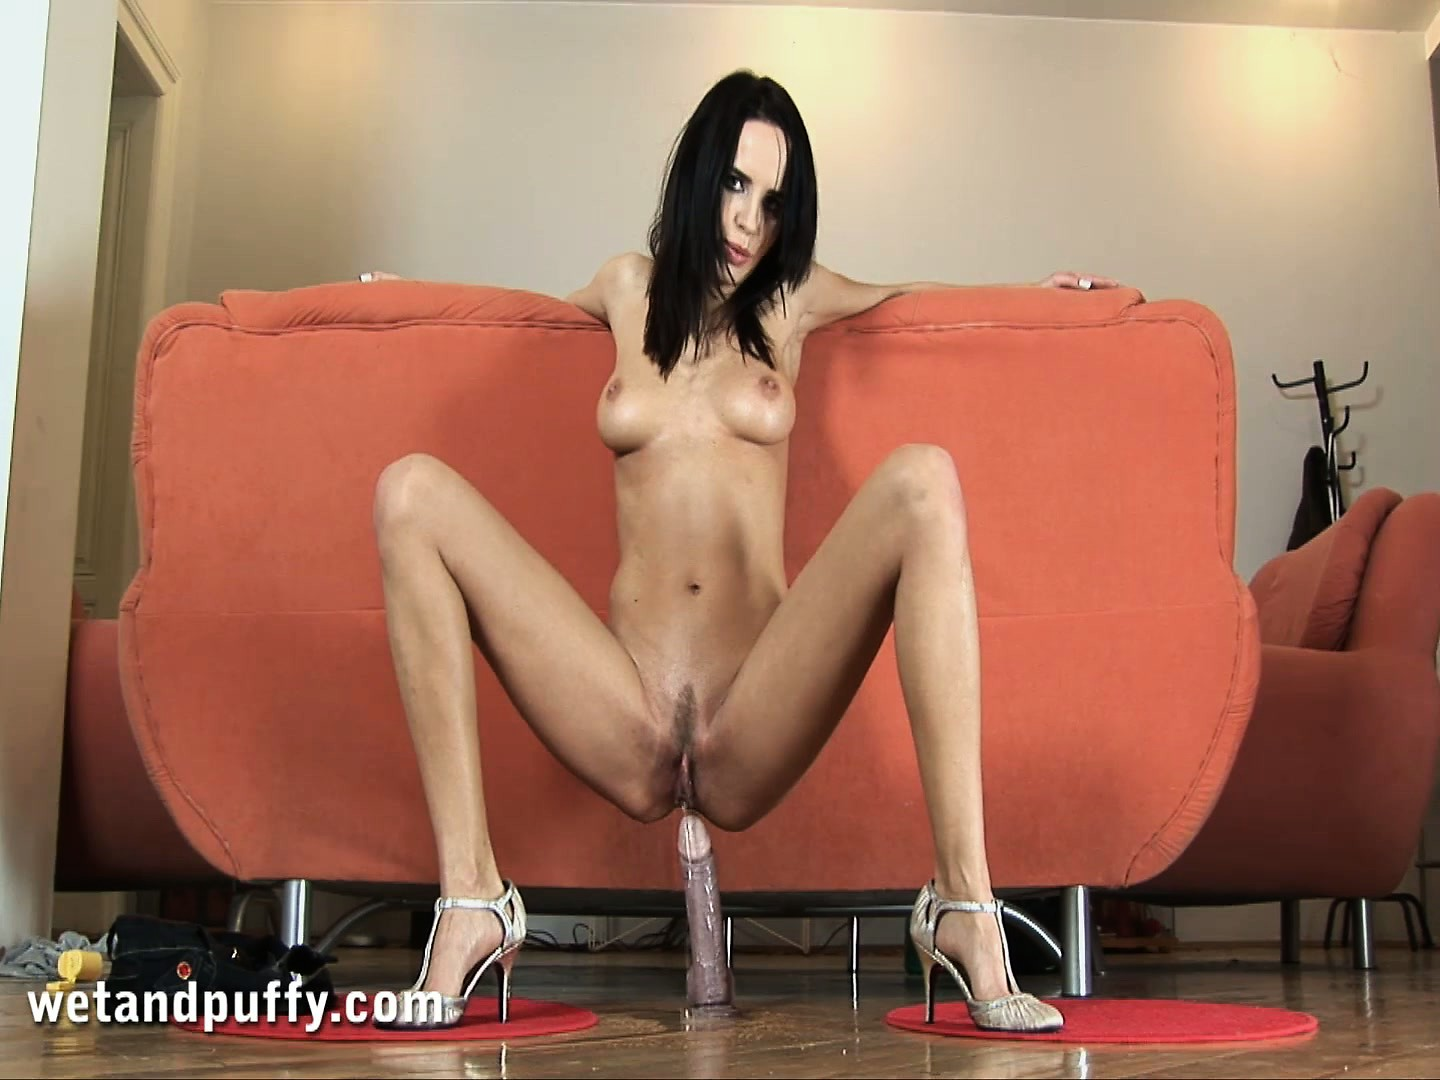 Porn Tube of Skinny Tart Jams Herself With A Dildo So Big It Makes Her Pee